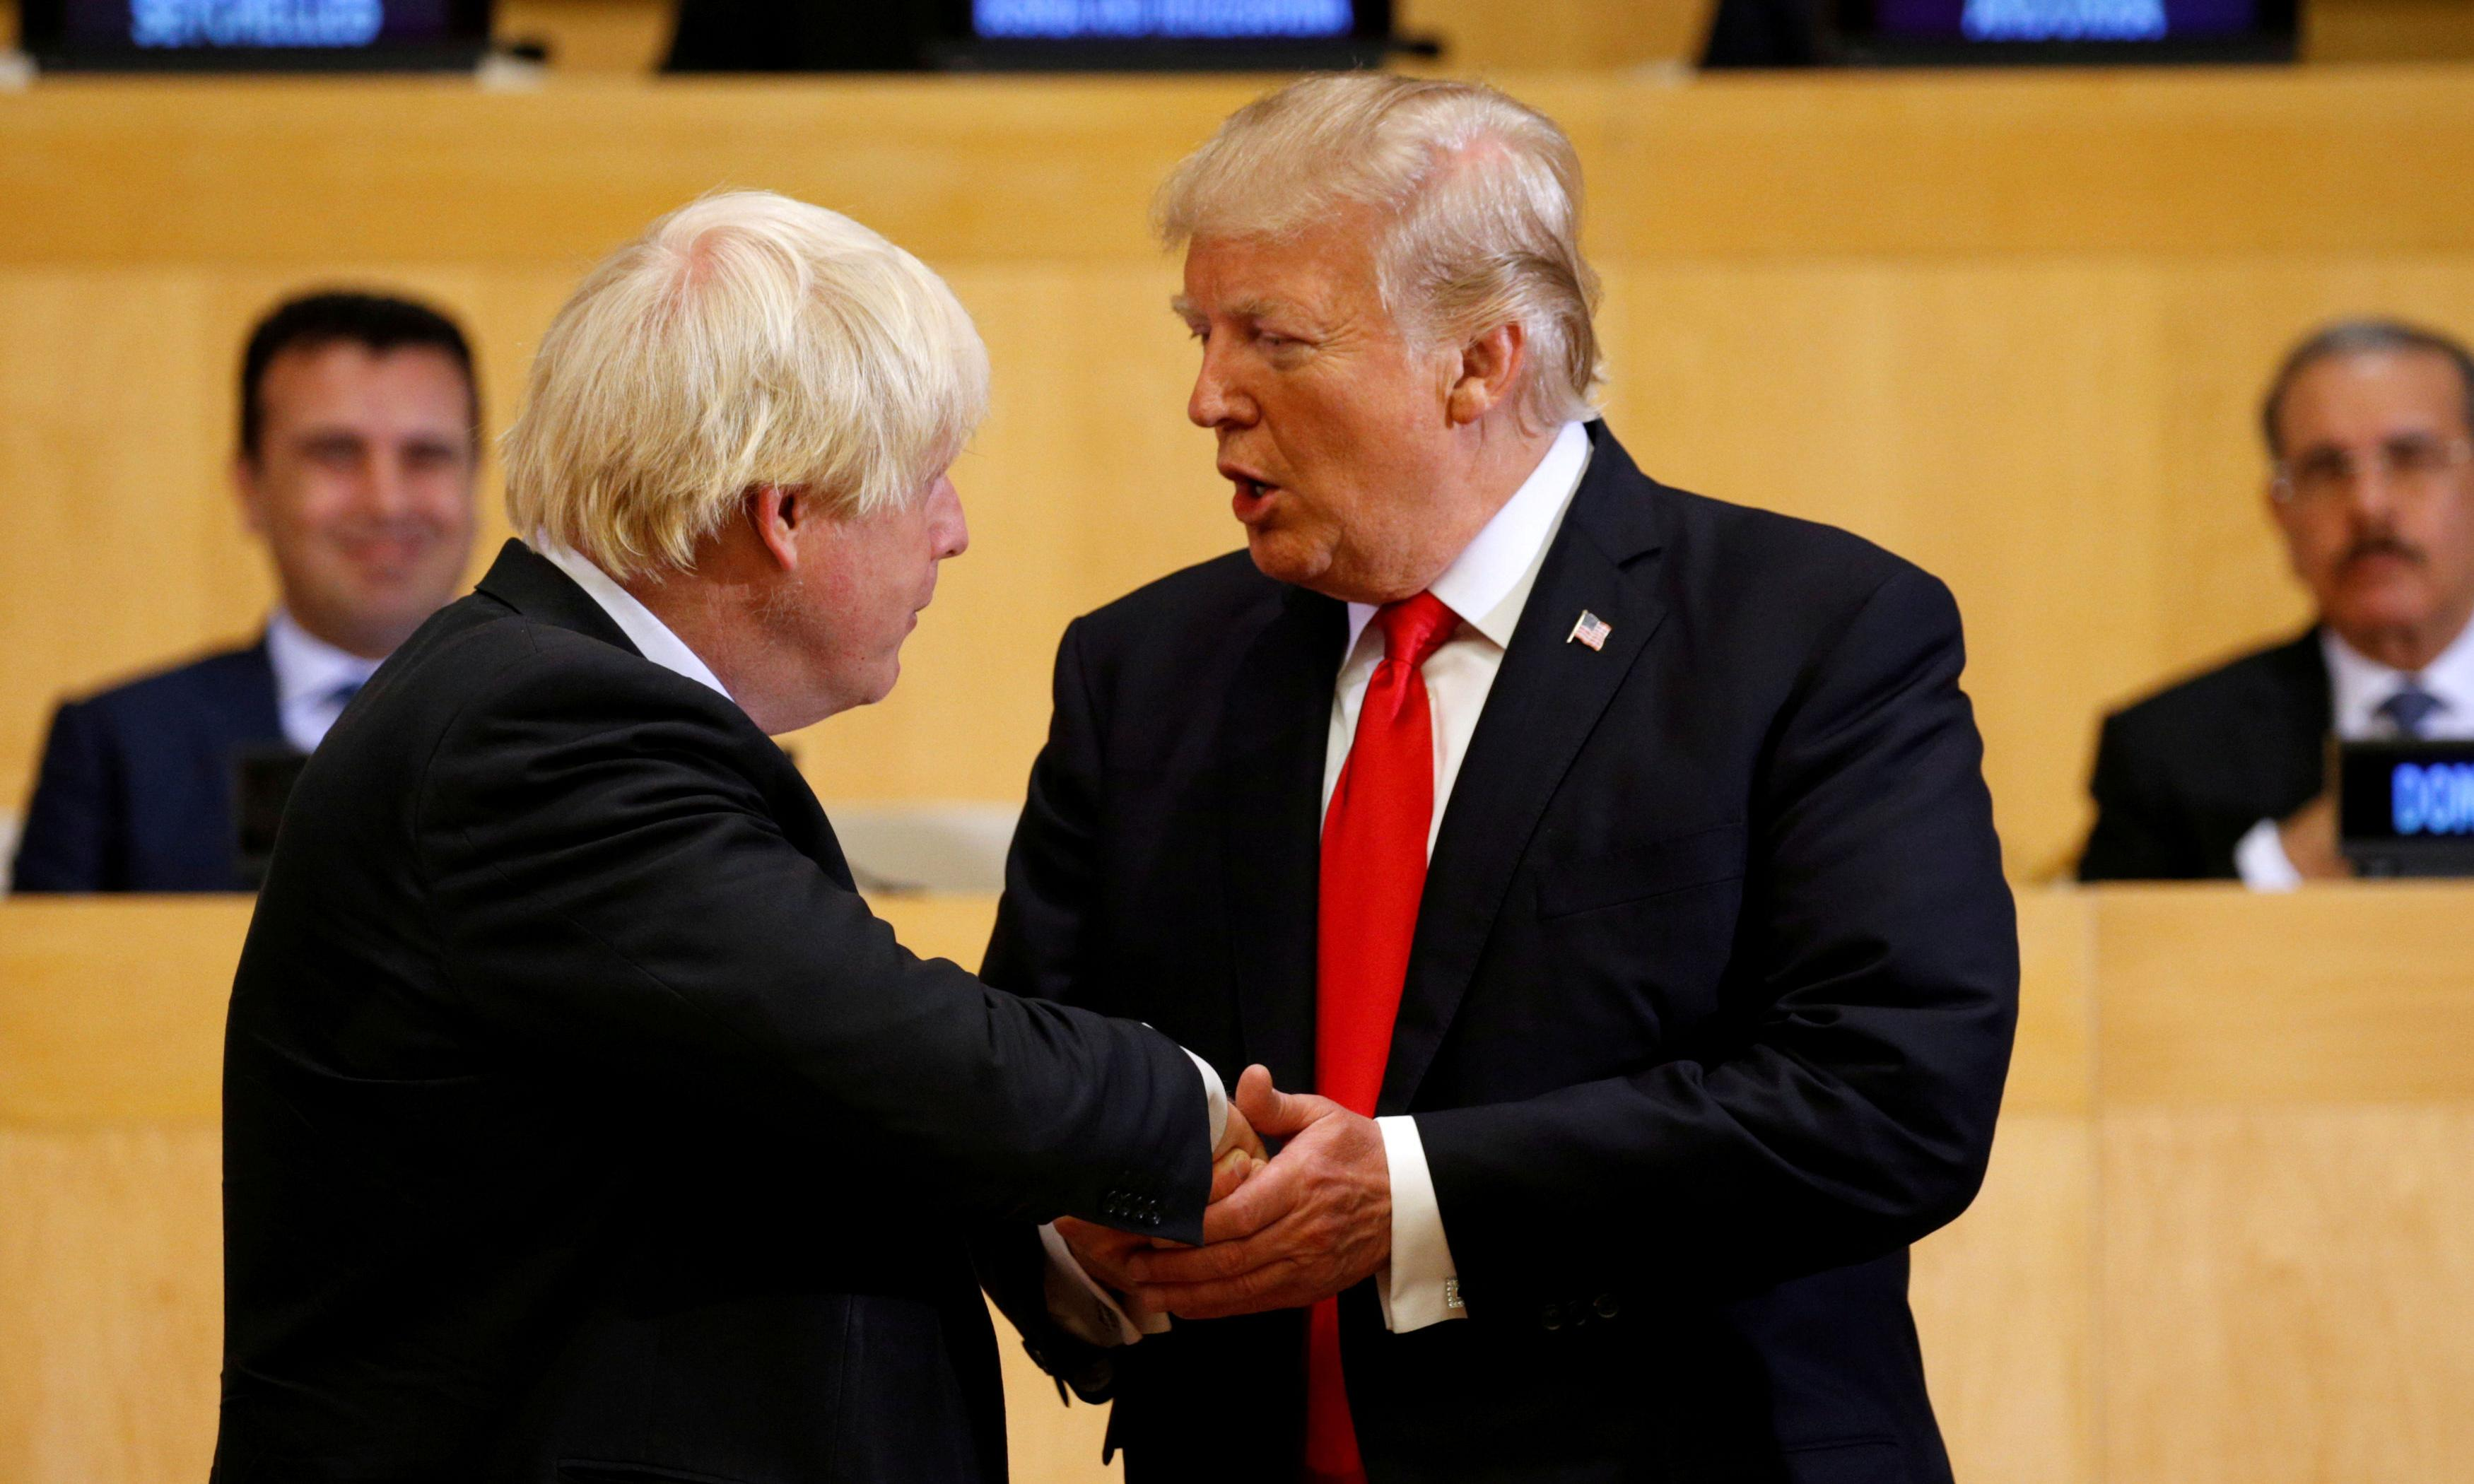 How will the US-UK relationship evolve with Boris Johnson in No 10?